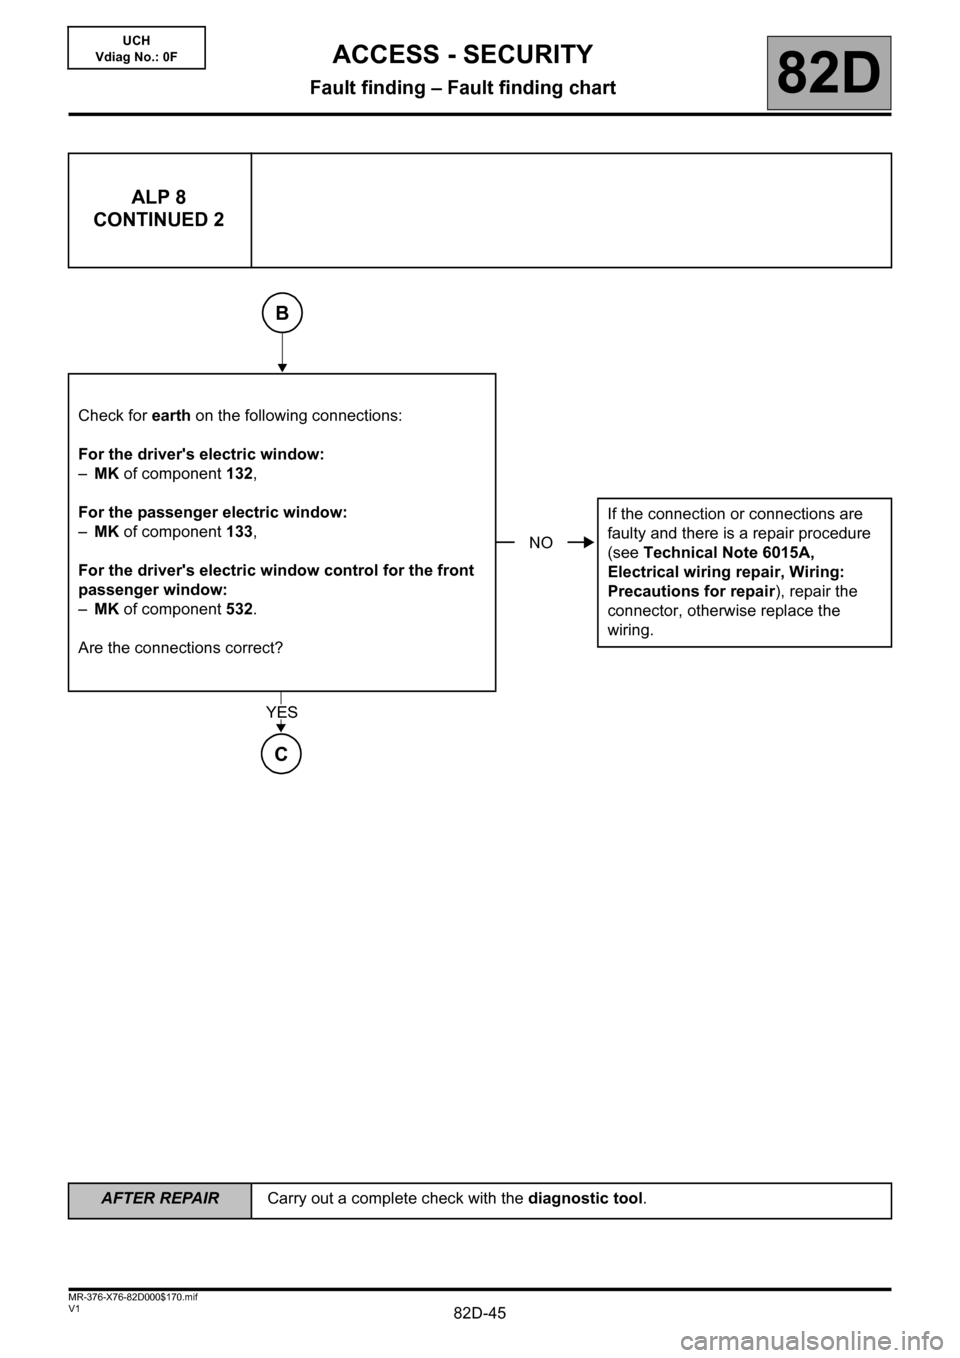 RENAULT KANGOO 2013 X61 / 2.G Access Security Workshop Manual, Page 45